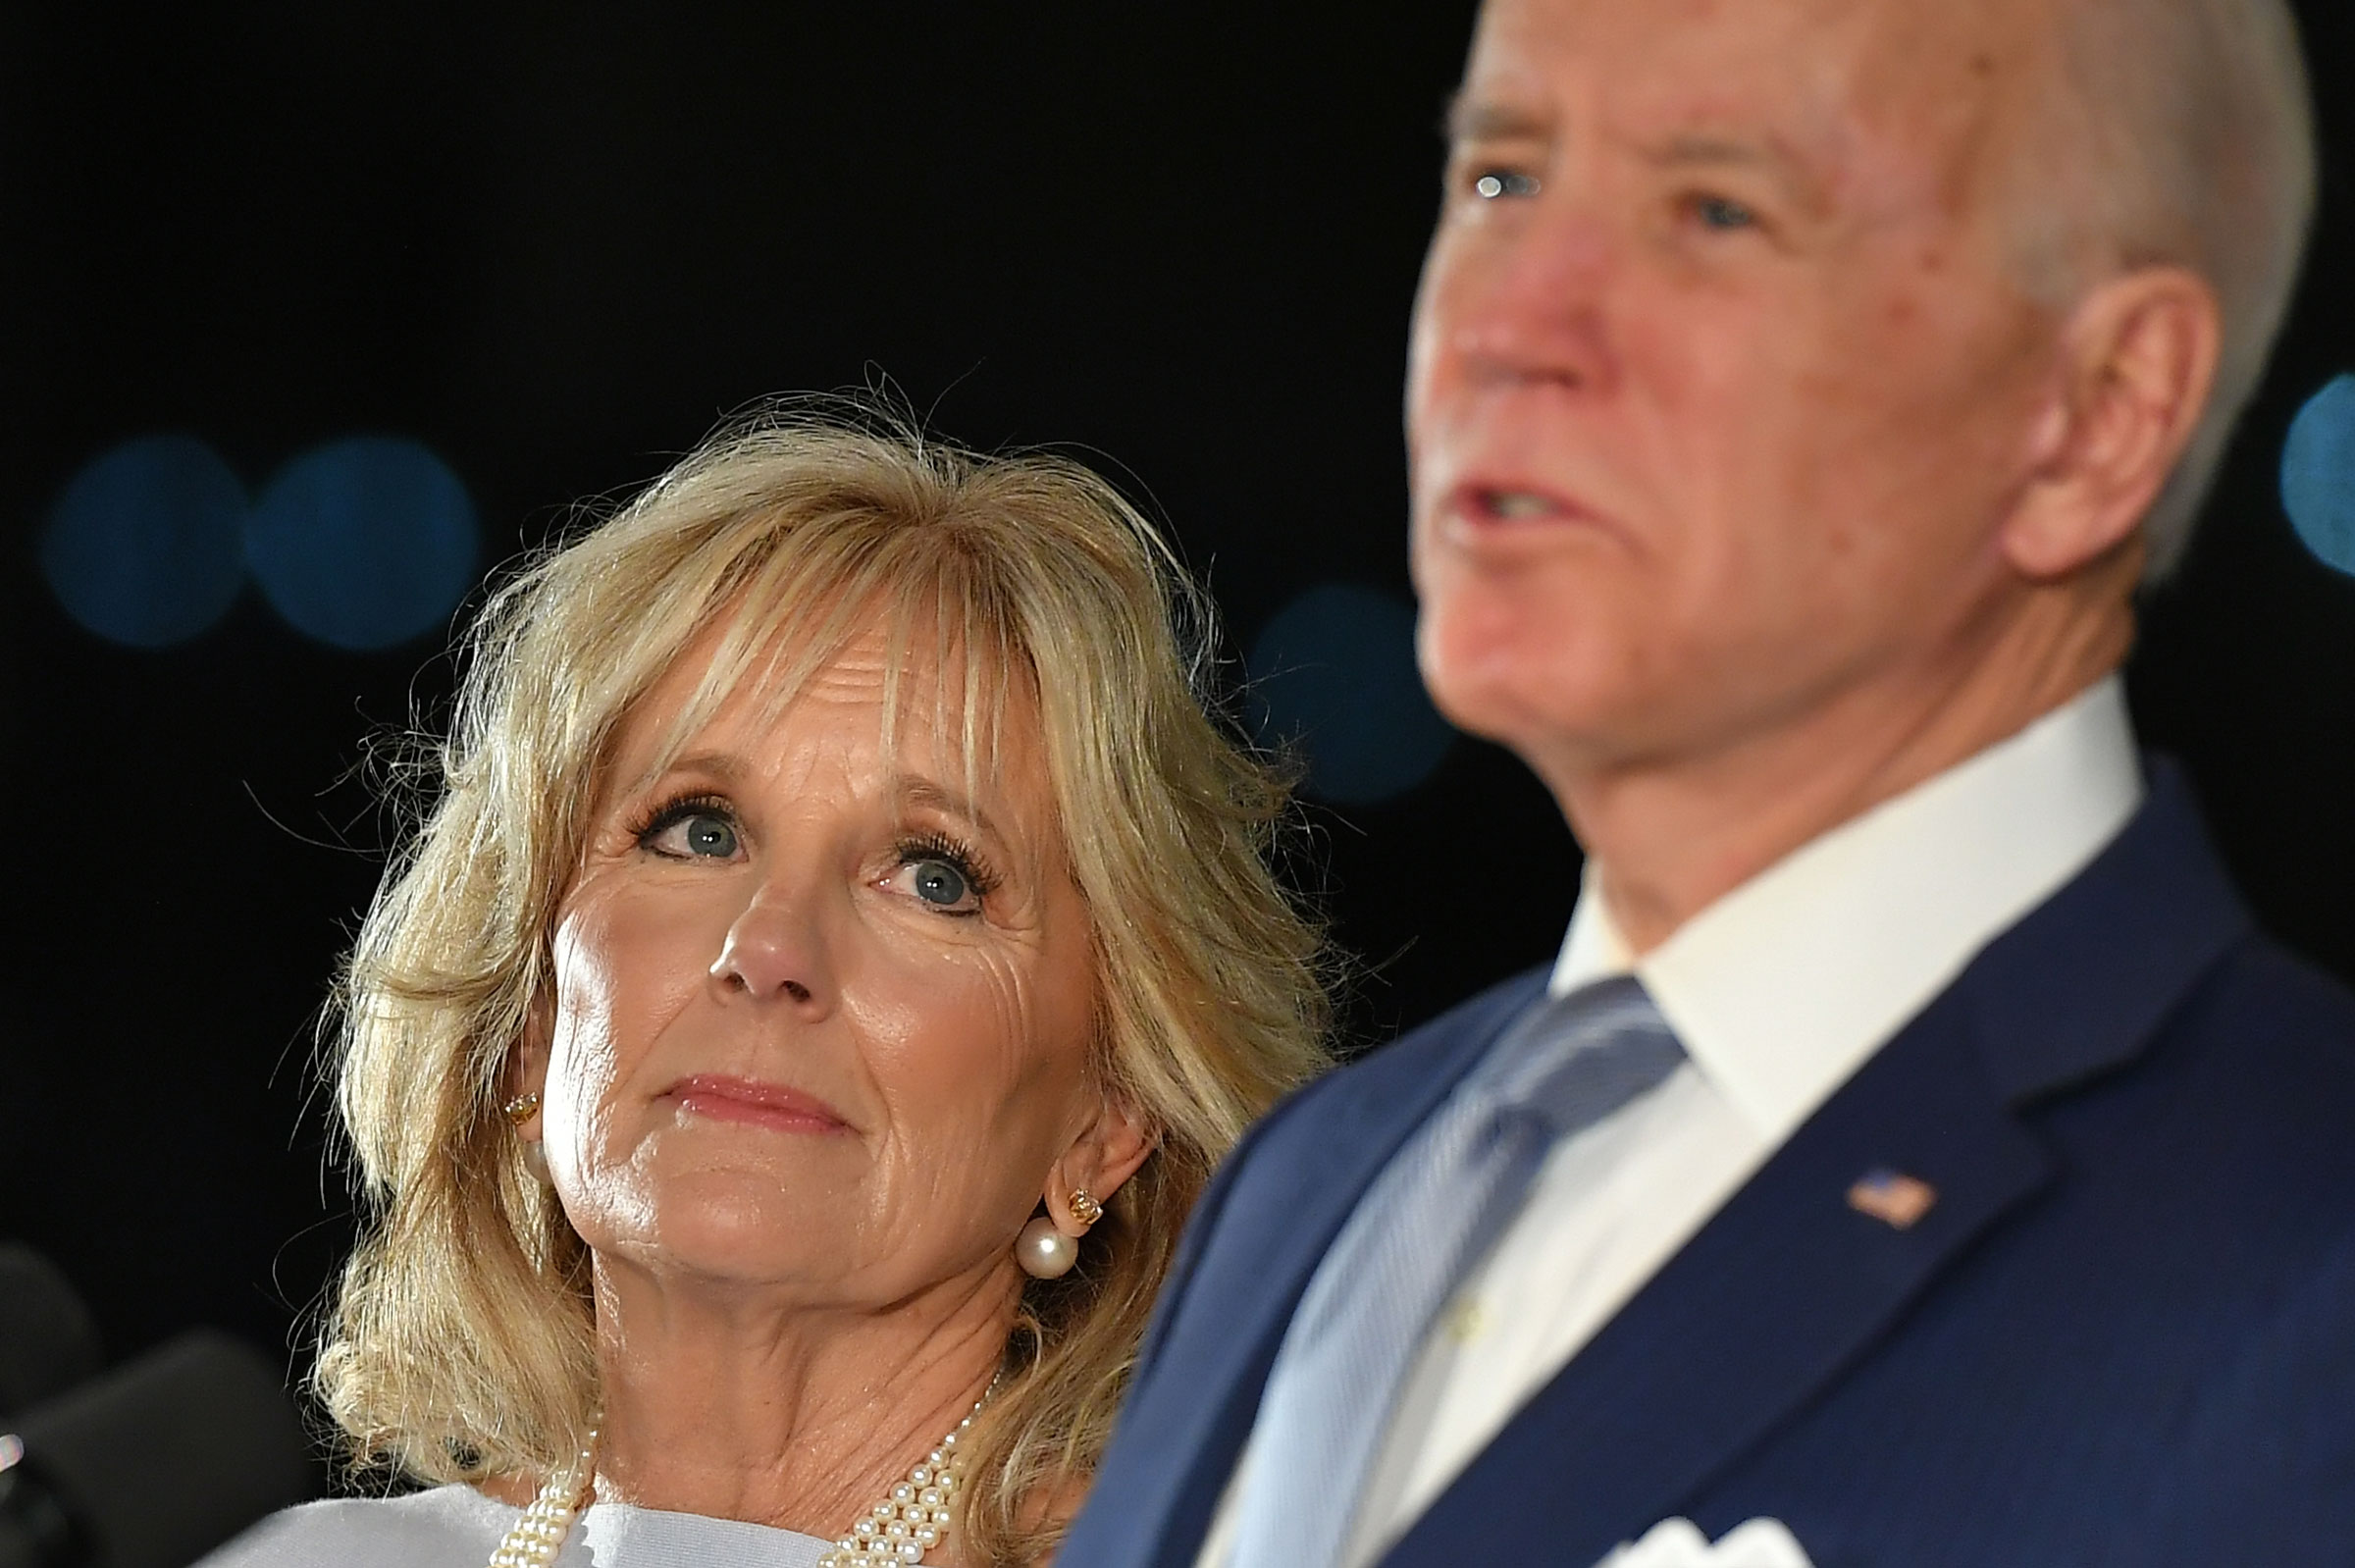 Jill Biden Steps Onto Stage As a Potential First Lady | Time